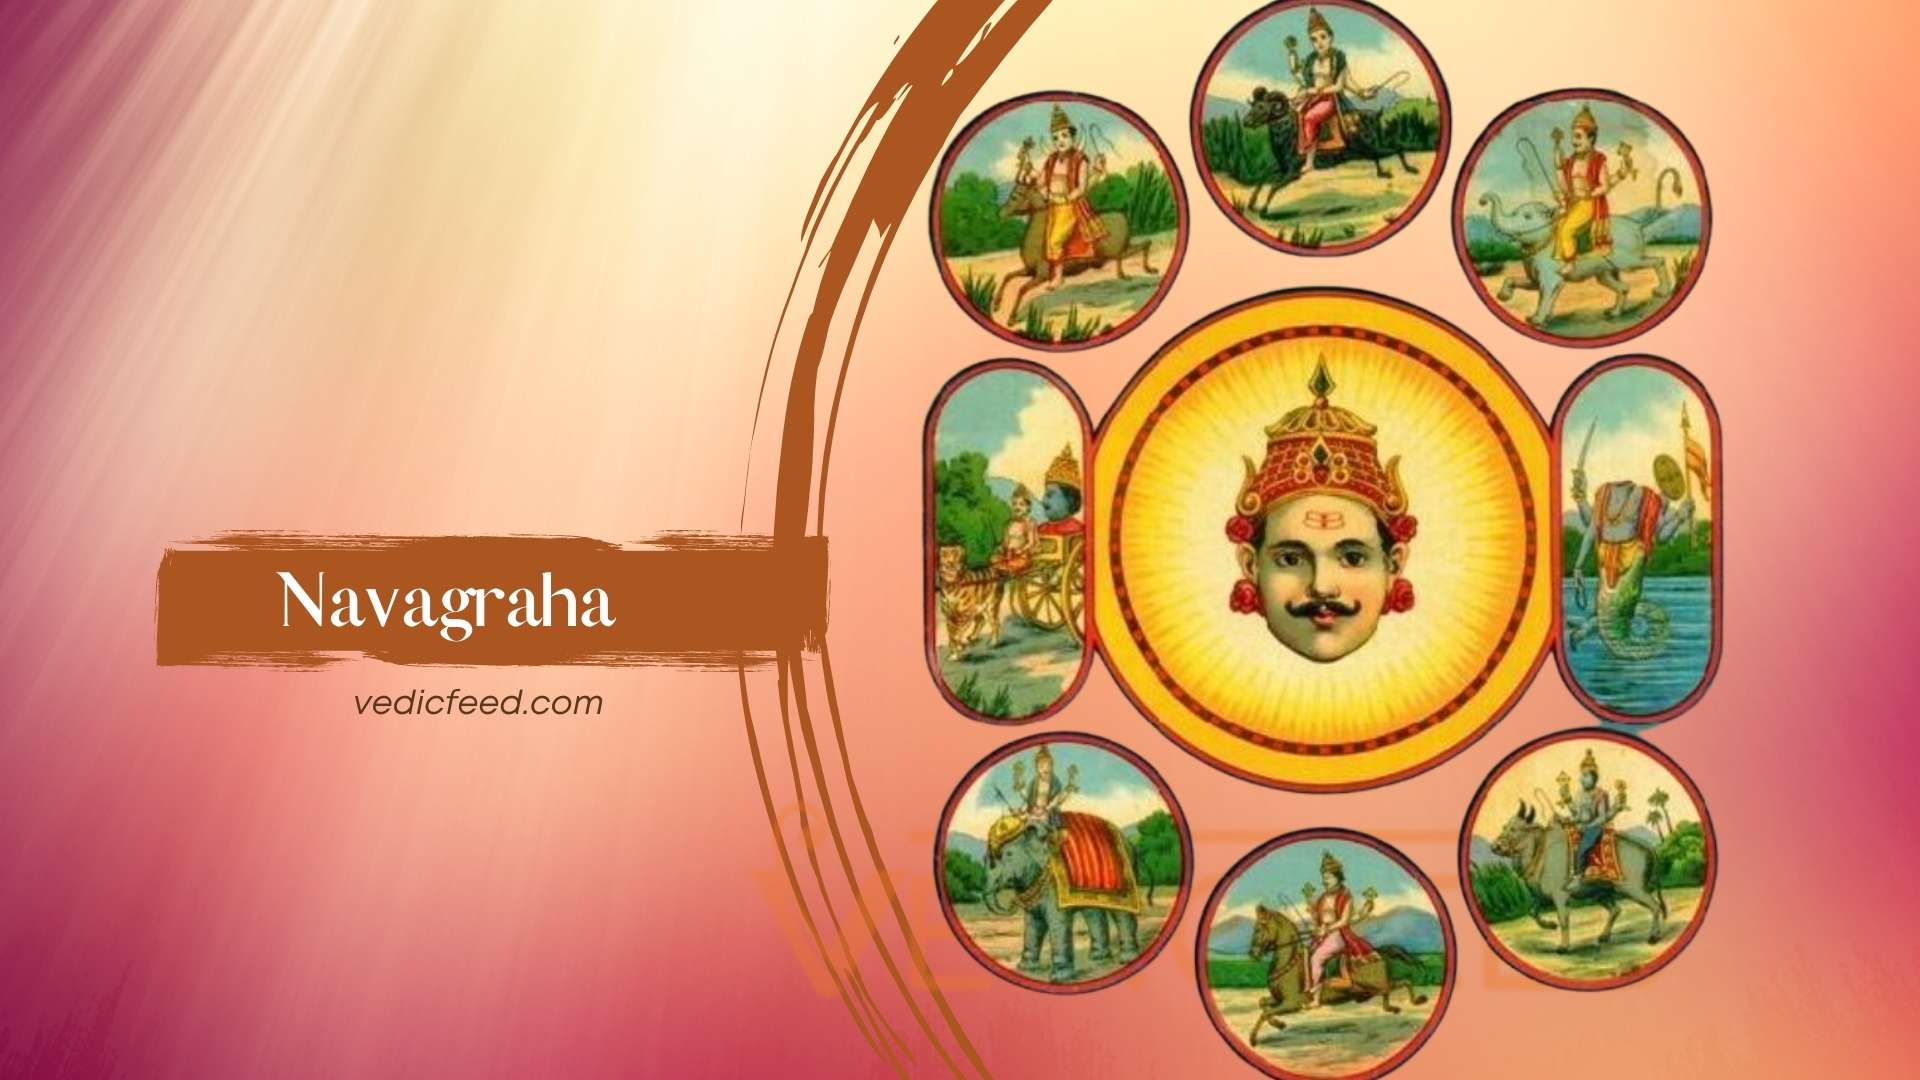 Navagraha - 9 Planets in Vedic Astrology